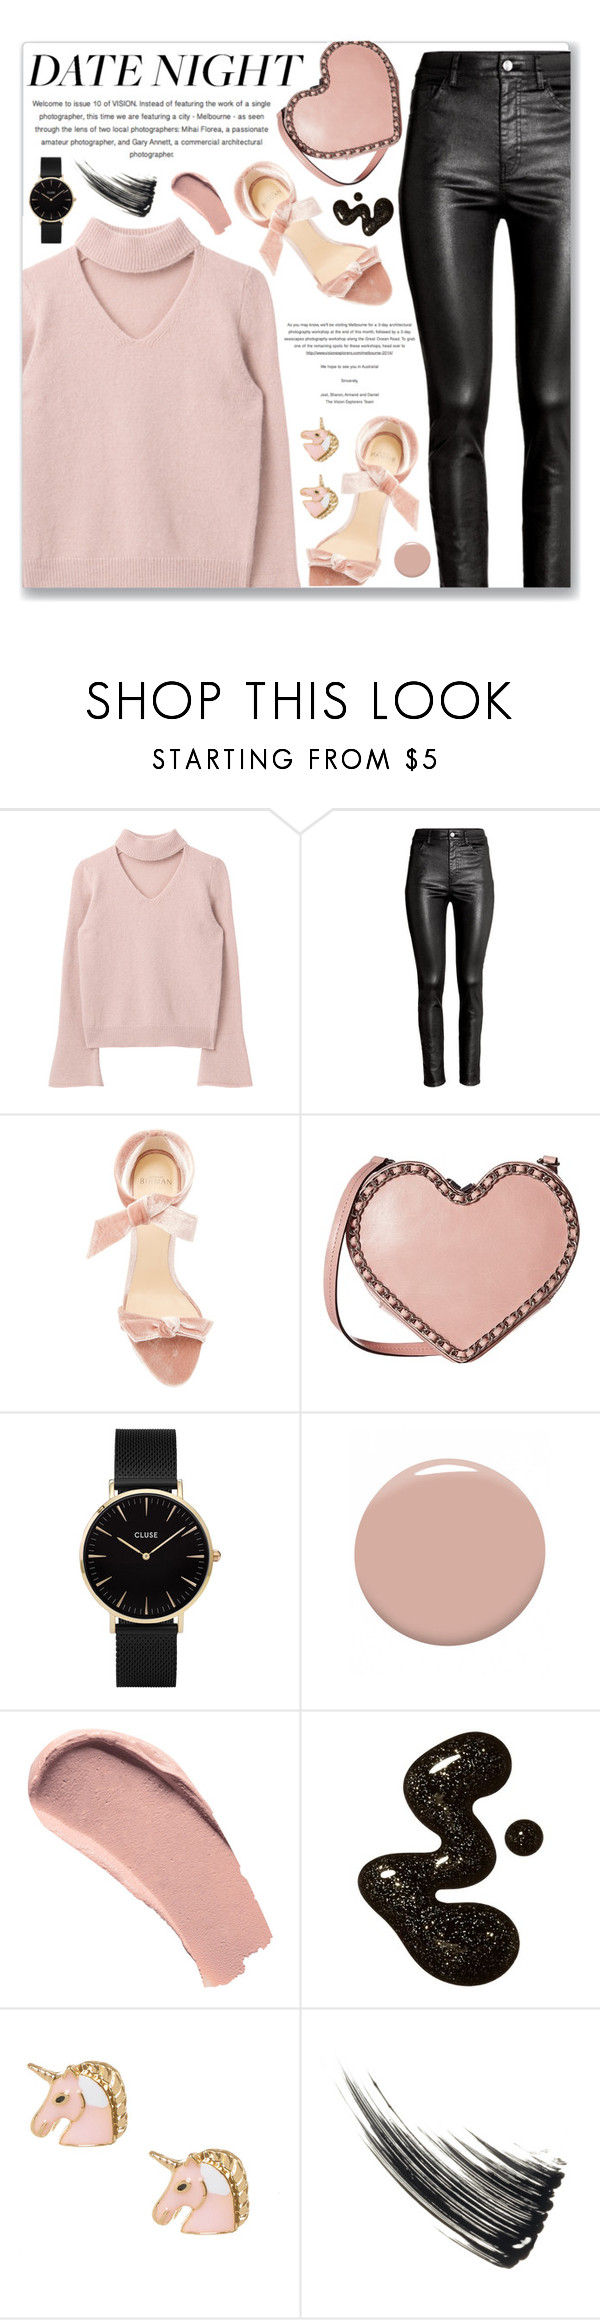 """Date Night"" by myduza-and-koteczka on Polyvore featuring moda, H&M, Alexandre Birman, Rebecca Minkoff, CLUSE, Christian Louboutin i Burberry"